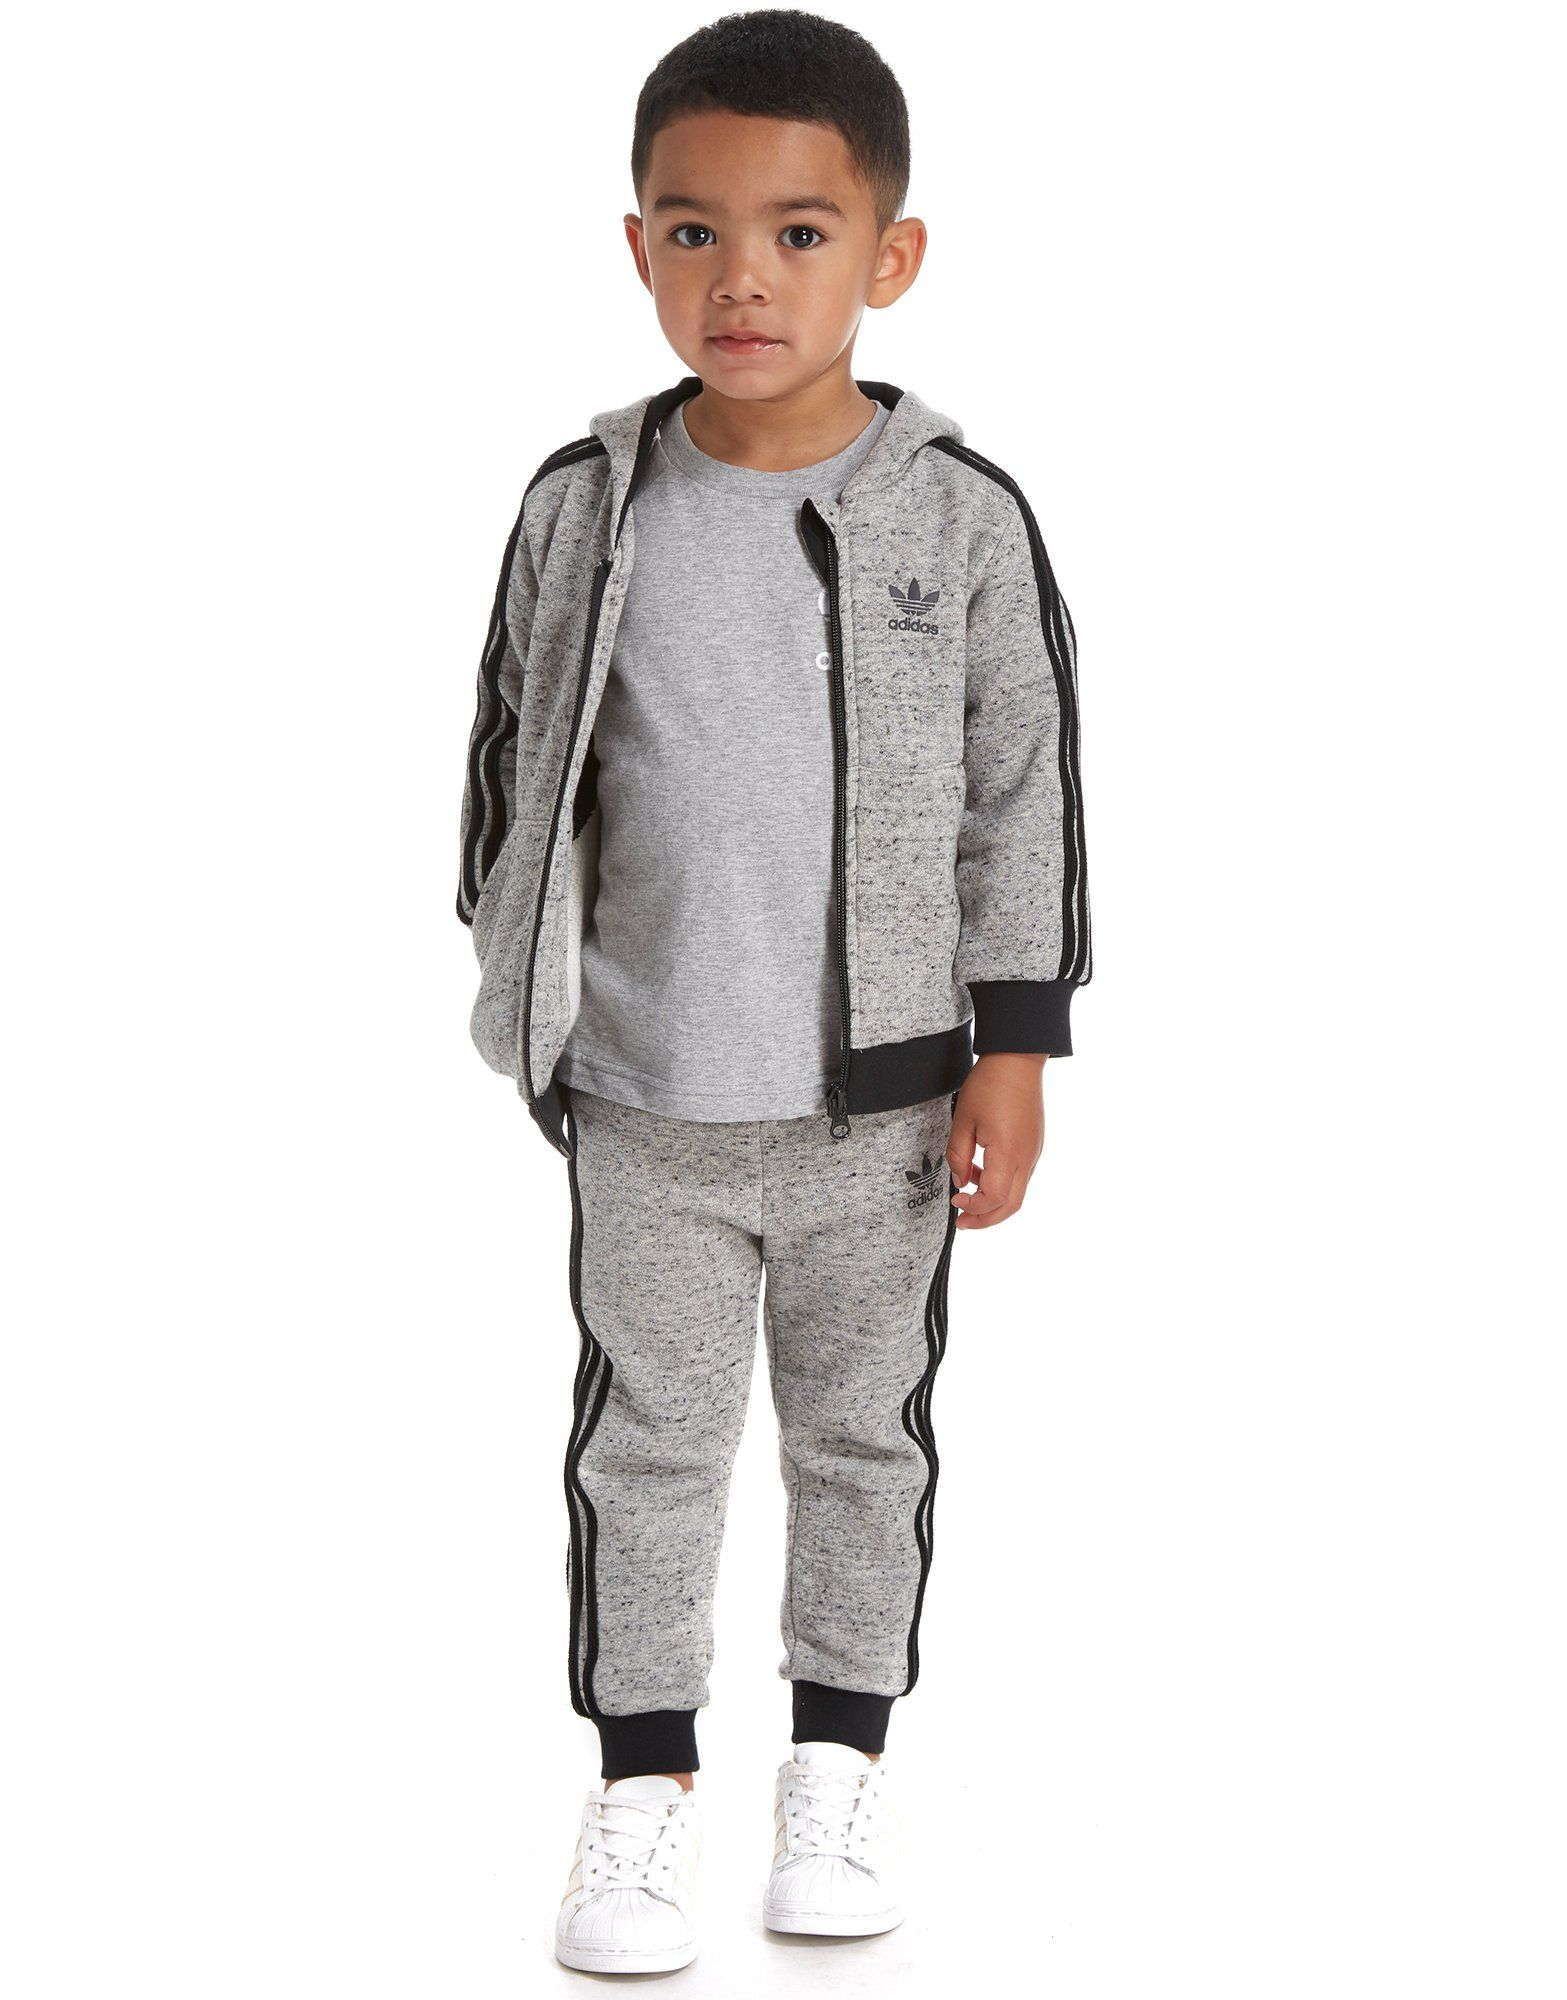 adidas Originals Trefoil Series Suit Infant